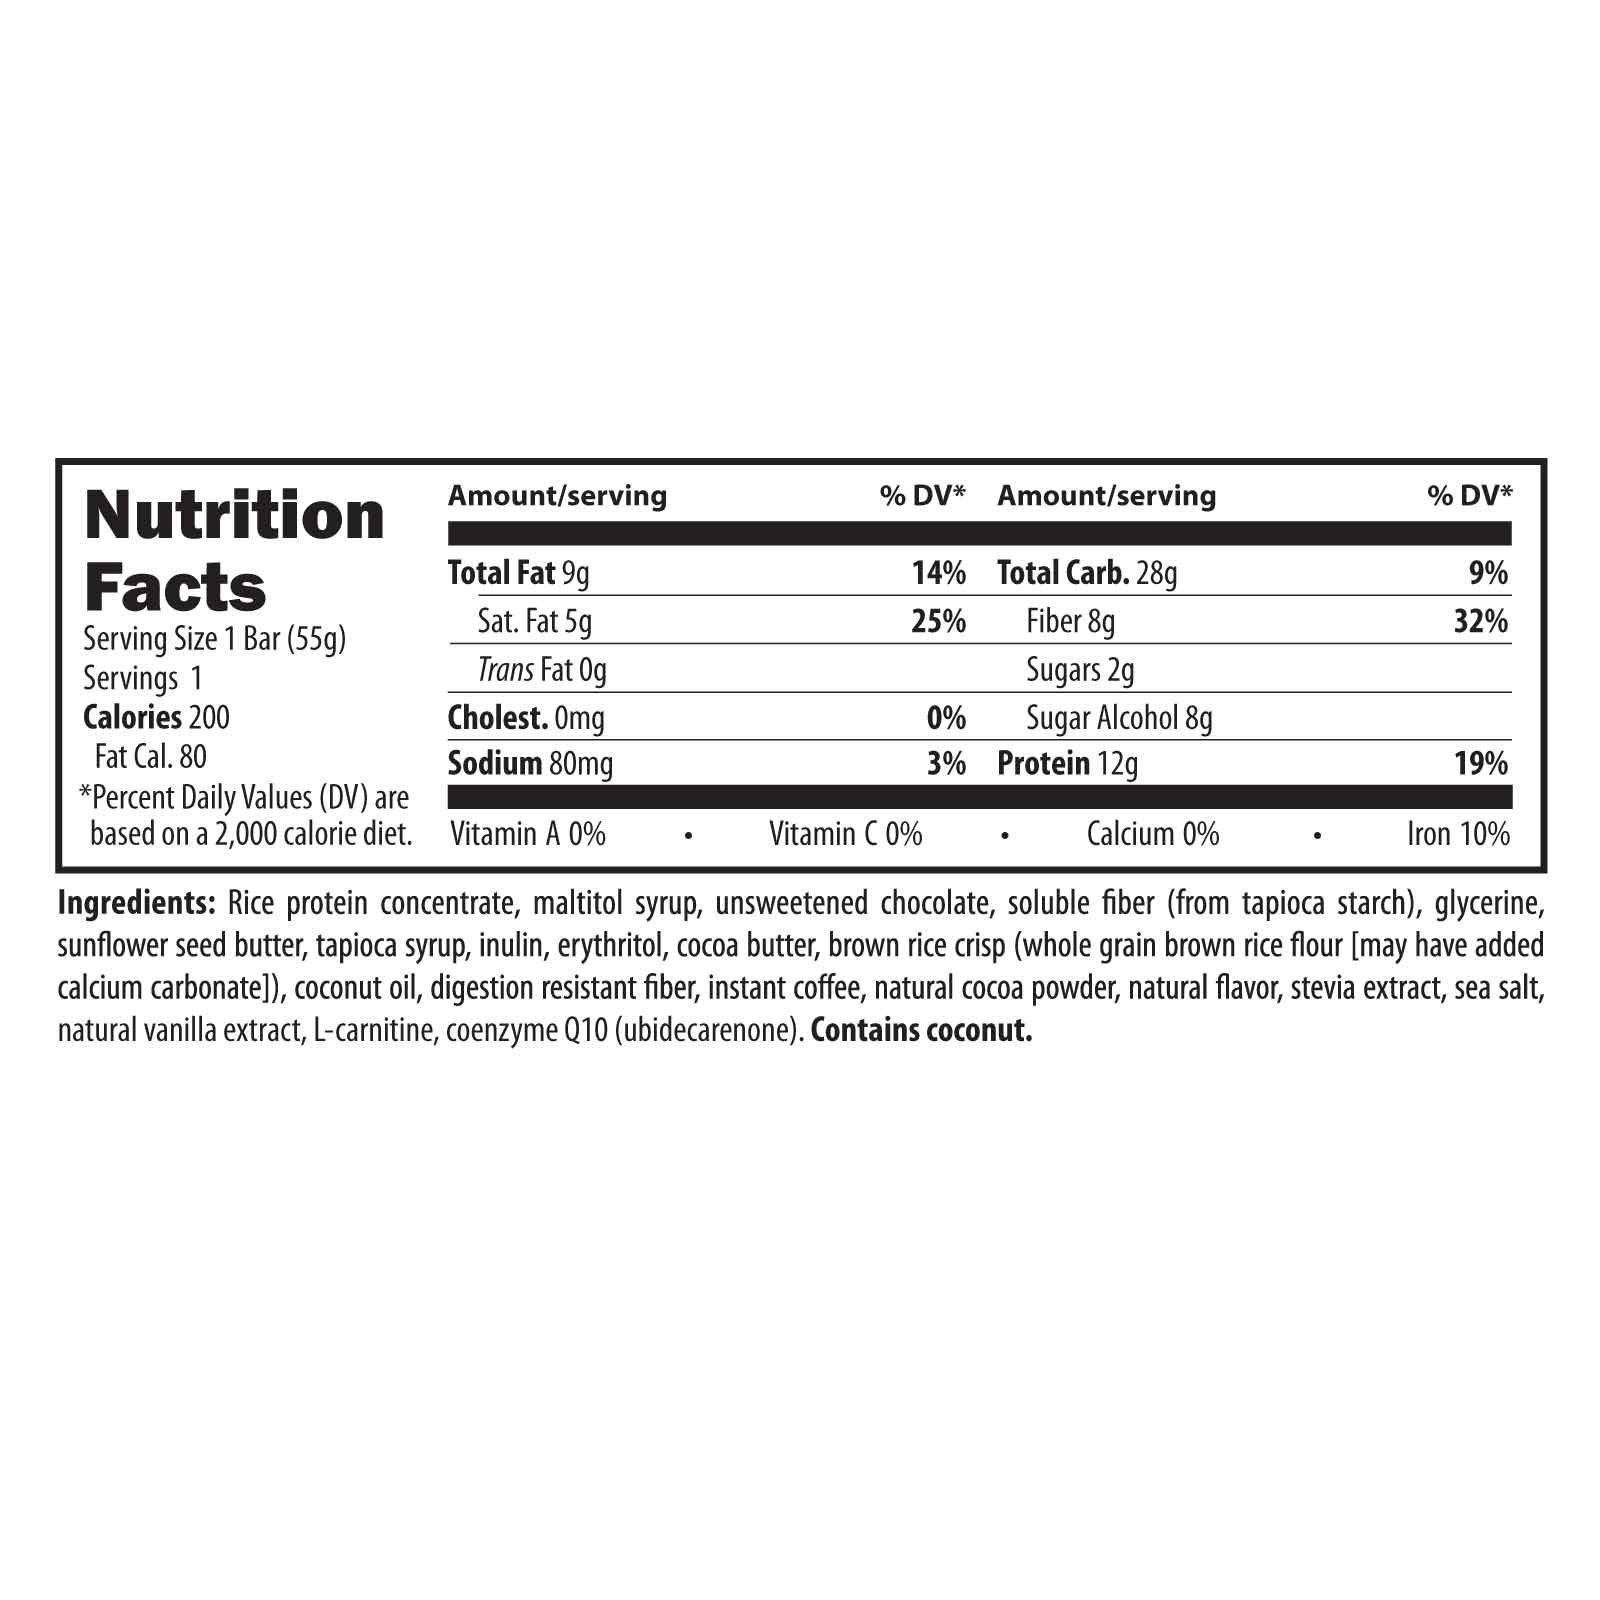 Designs for Health MochaNRG DF - Vegan-Friendly Rice Protein Fiber Bars in Mocha with 8 Net Carbs + 12 Grams Protein, Dairy-Free Energy Support Bar with Carnitine + CoQ10 (12 Bars) by designs for health (Image #2)